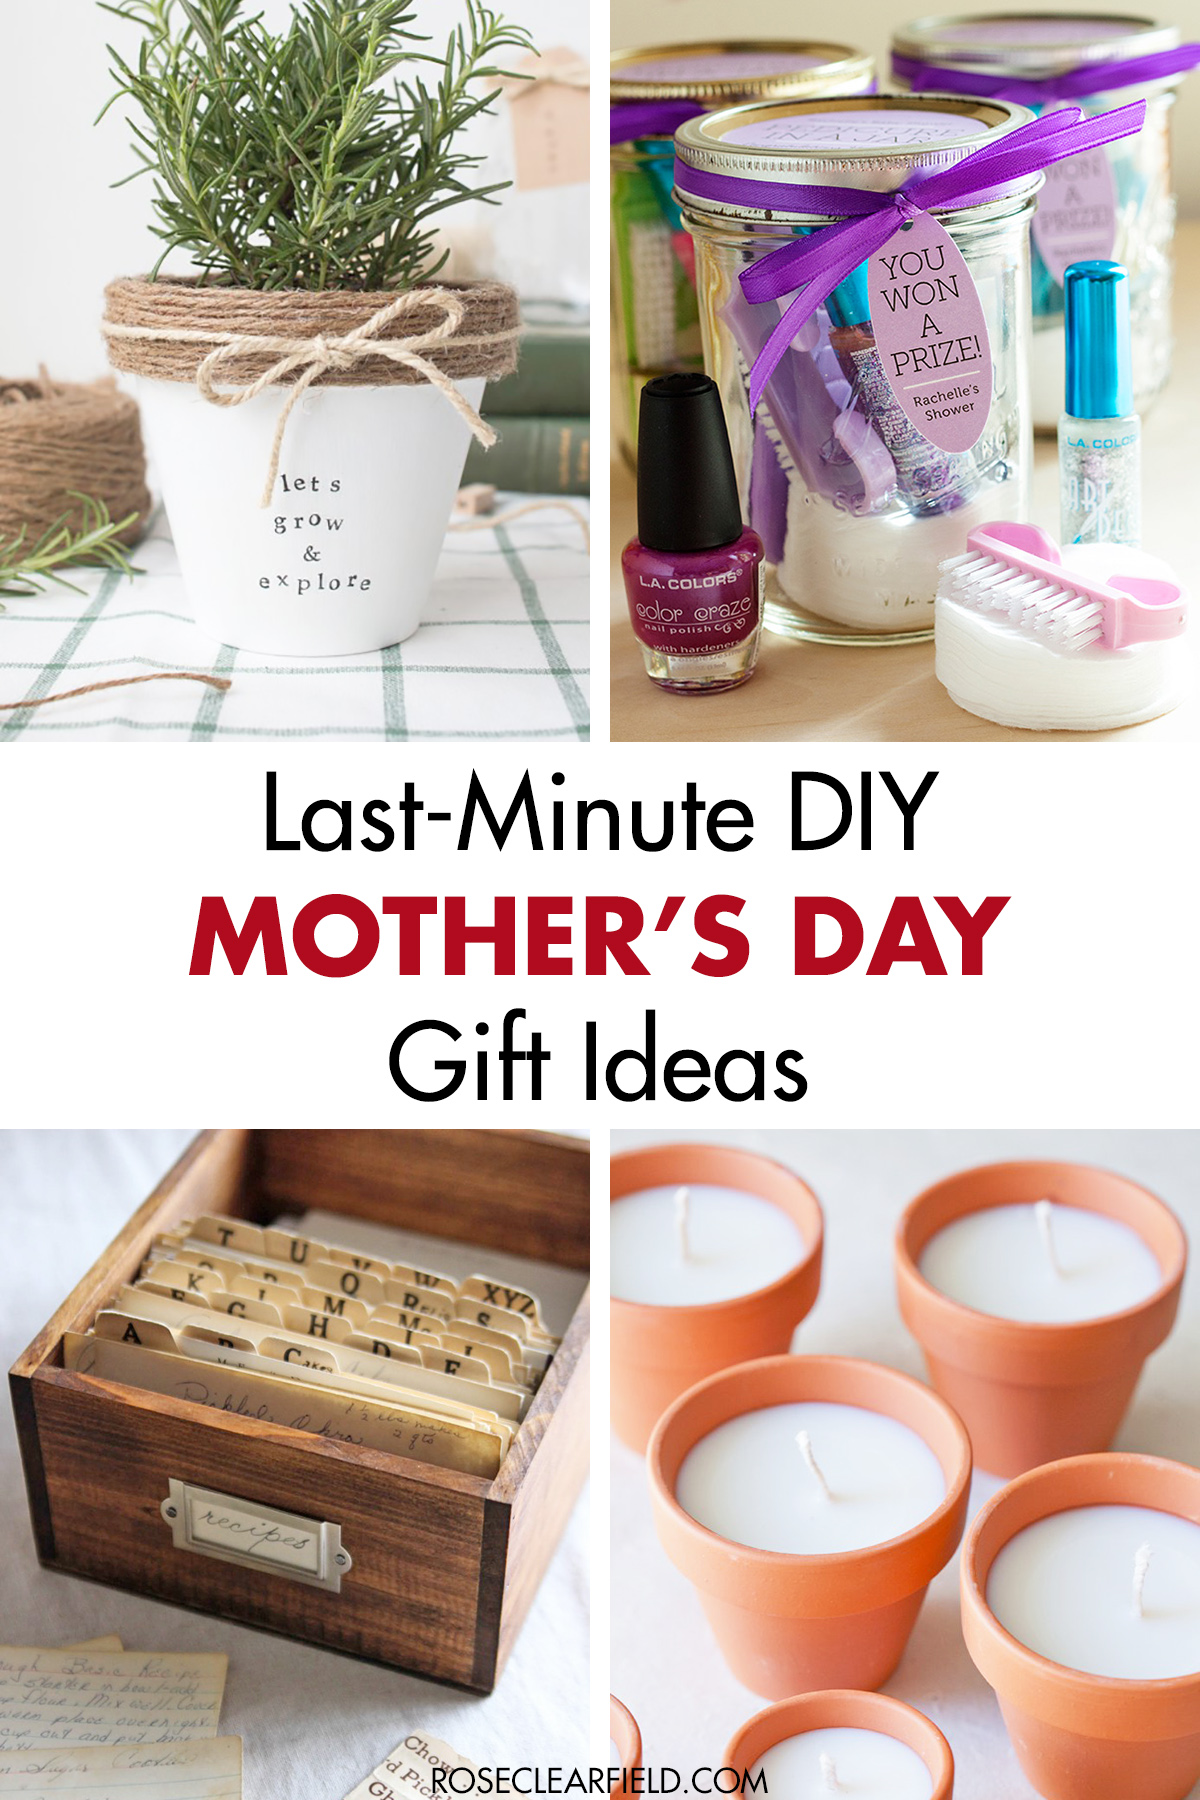 Last Minute Diy Mother S Day Gift Ideas Rose Clearfield